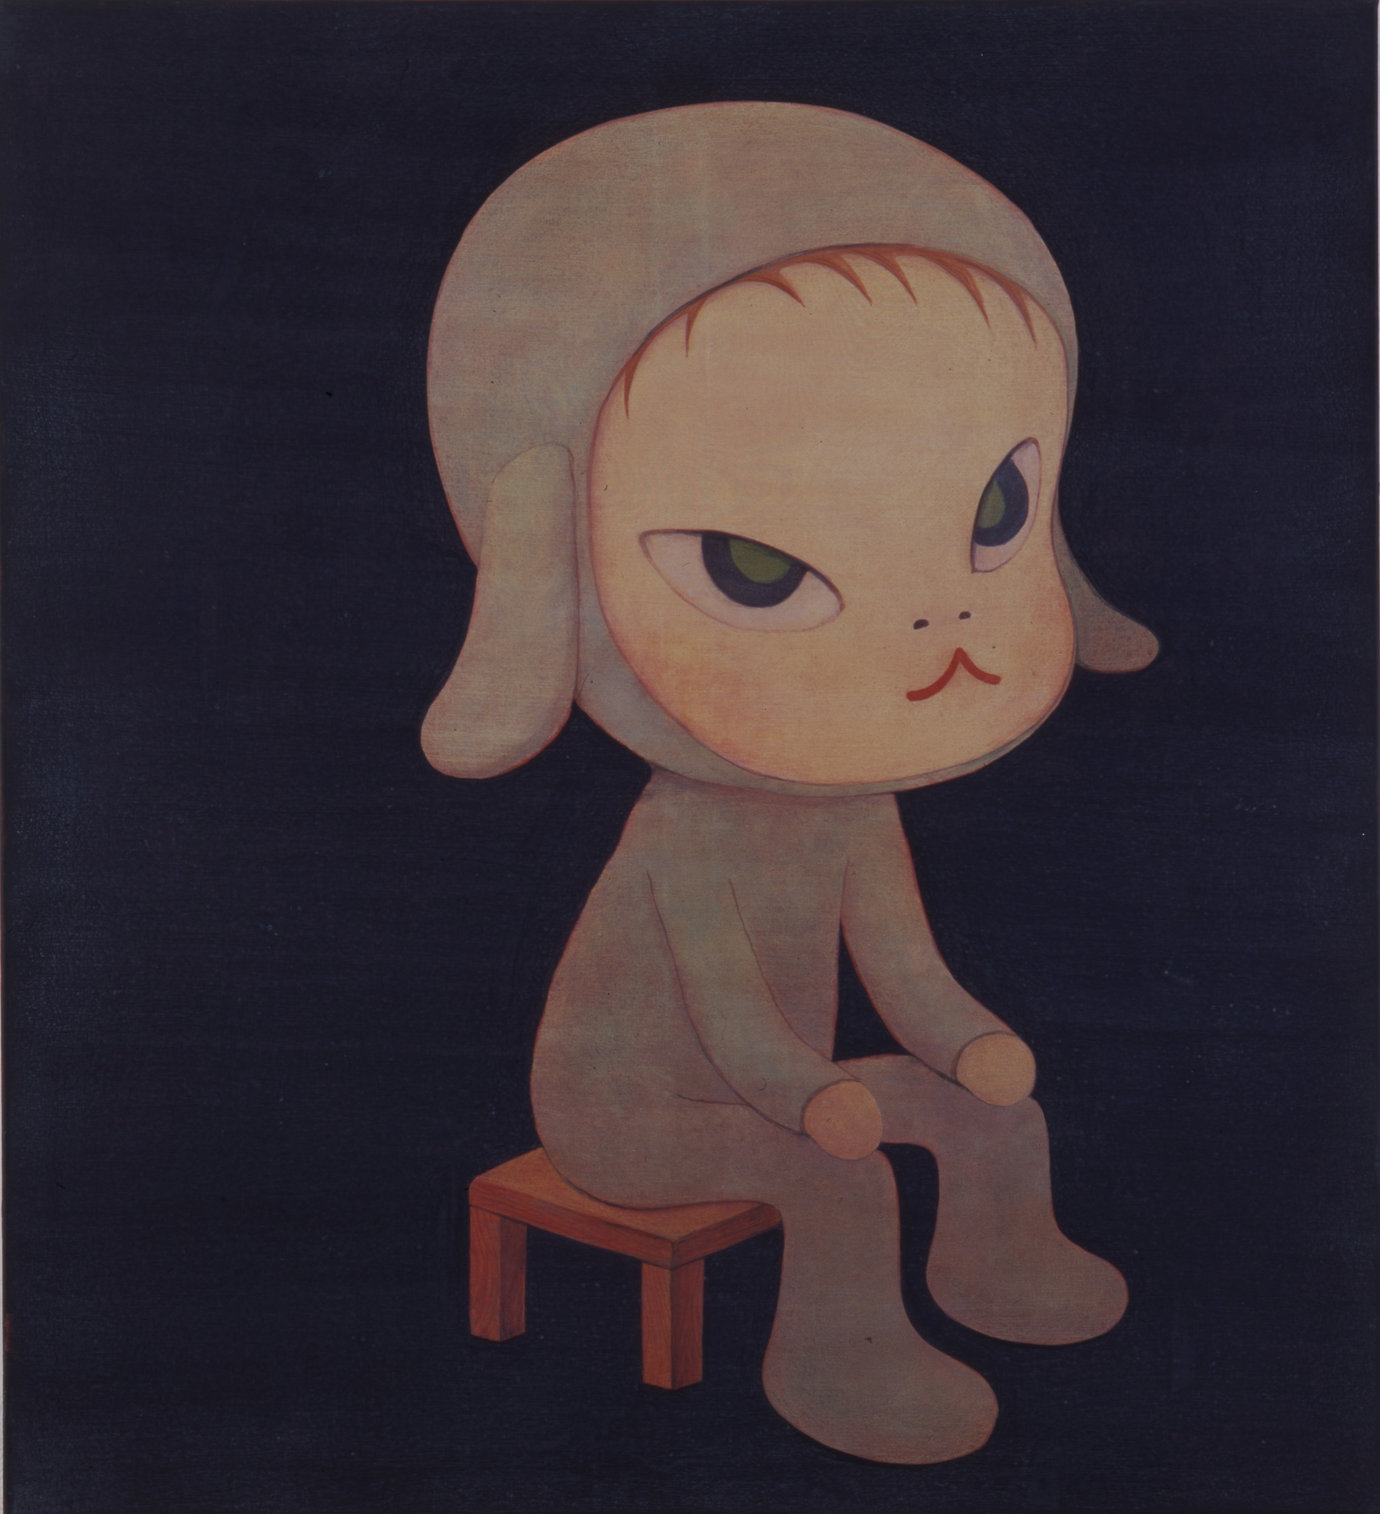 , 1997. Acrylic on canvas, 47 1/8 x 43 1/8 in. (119.7 x 109.5 cm).